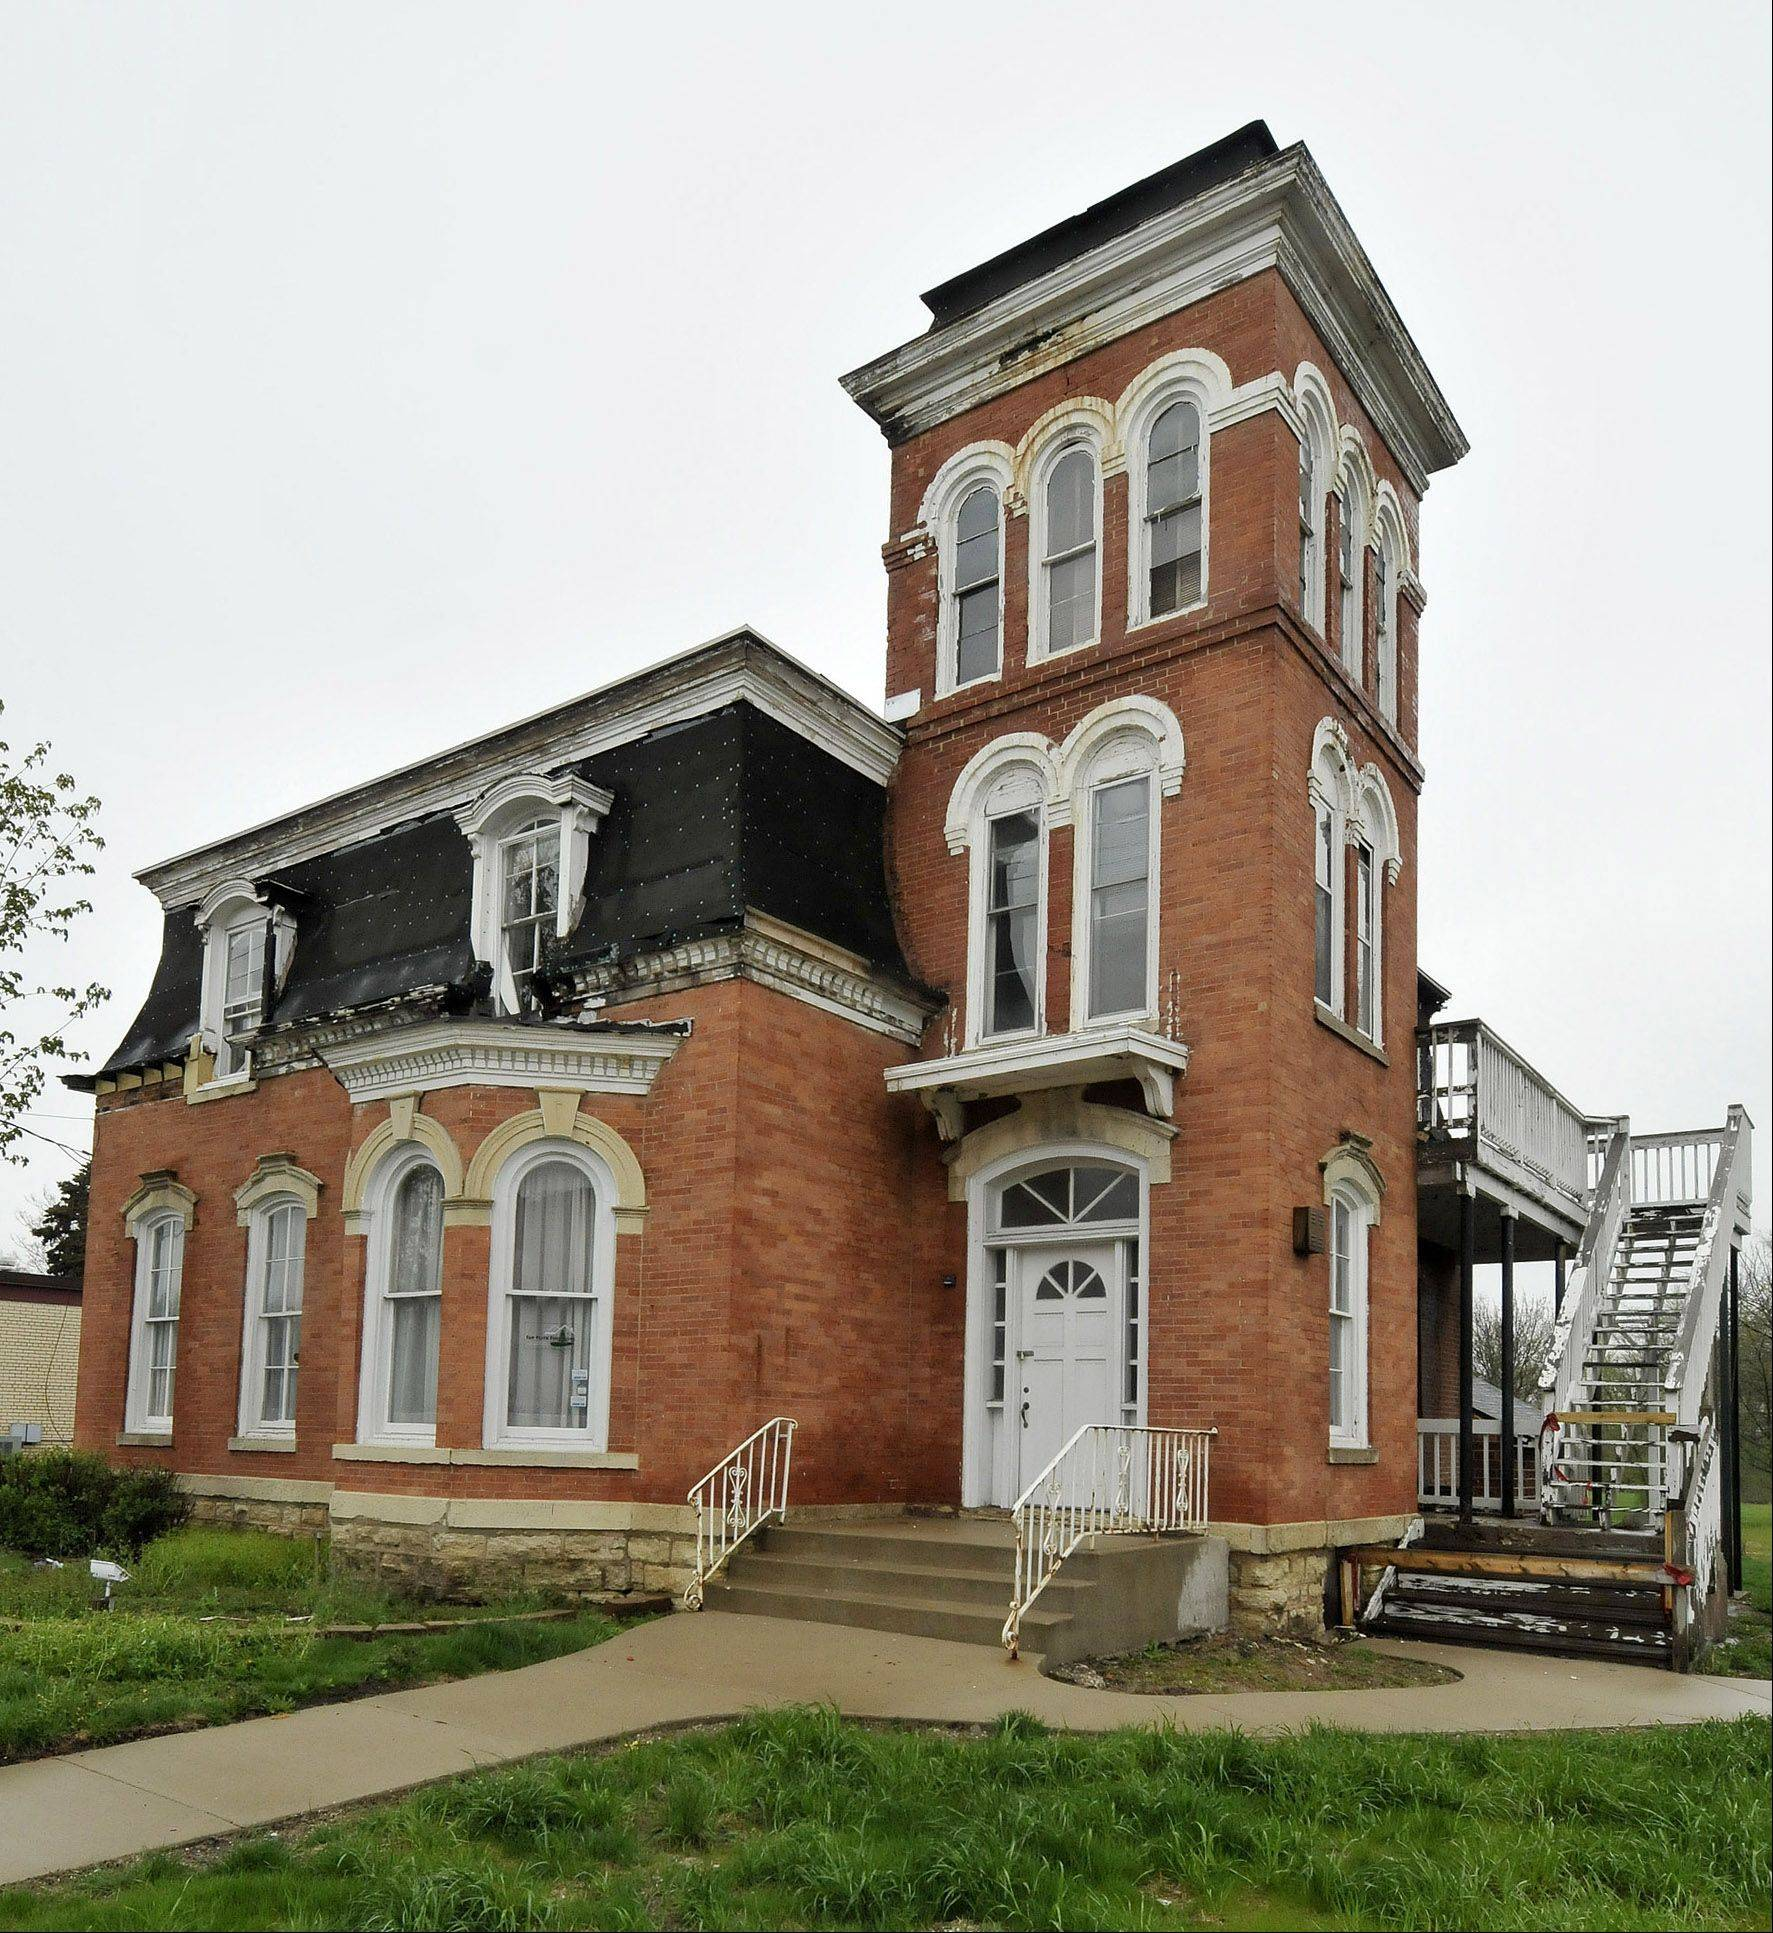 Members of the West Chicago Community Center say the nonprofit group is willing to purchase the Joel Wiant House in downtown West Chicago and restore it. The house, located at 151 W. Washington St., was built around 1869 for local businessman Joel Wiant.